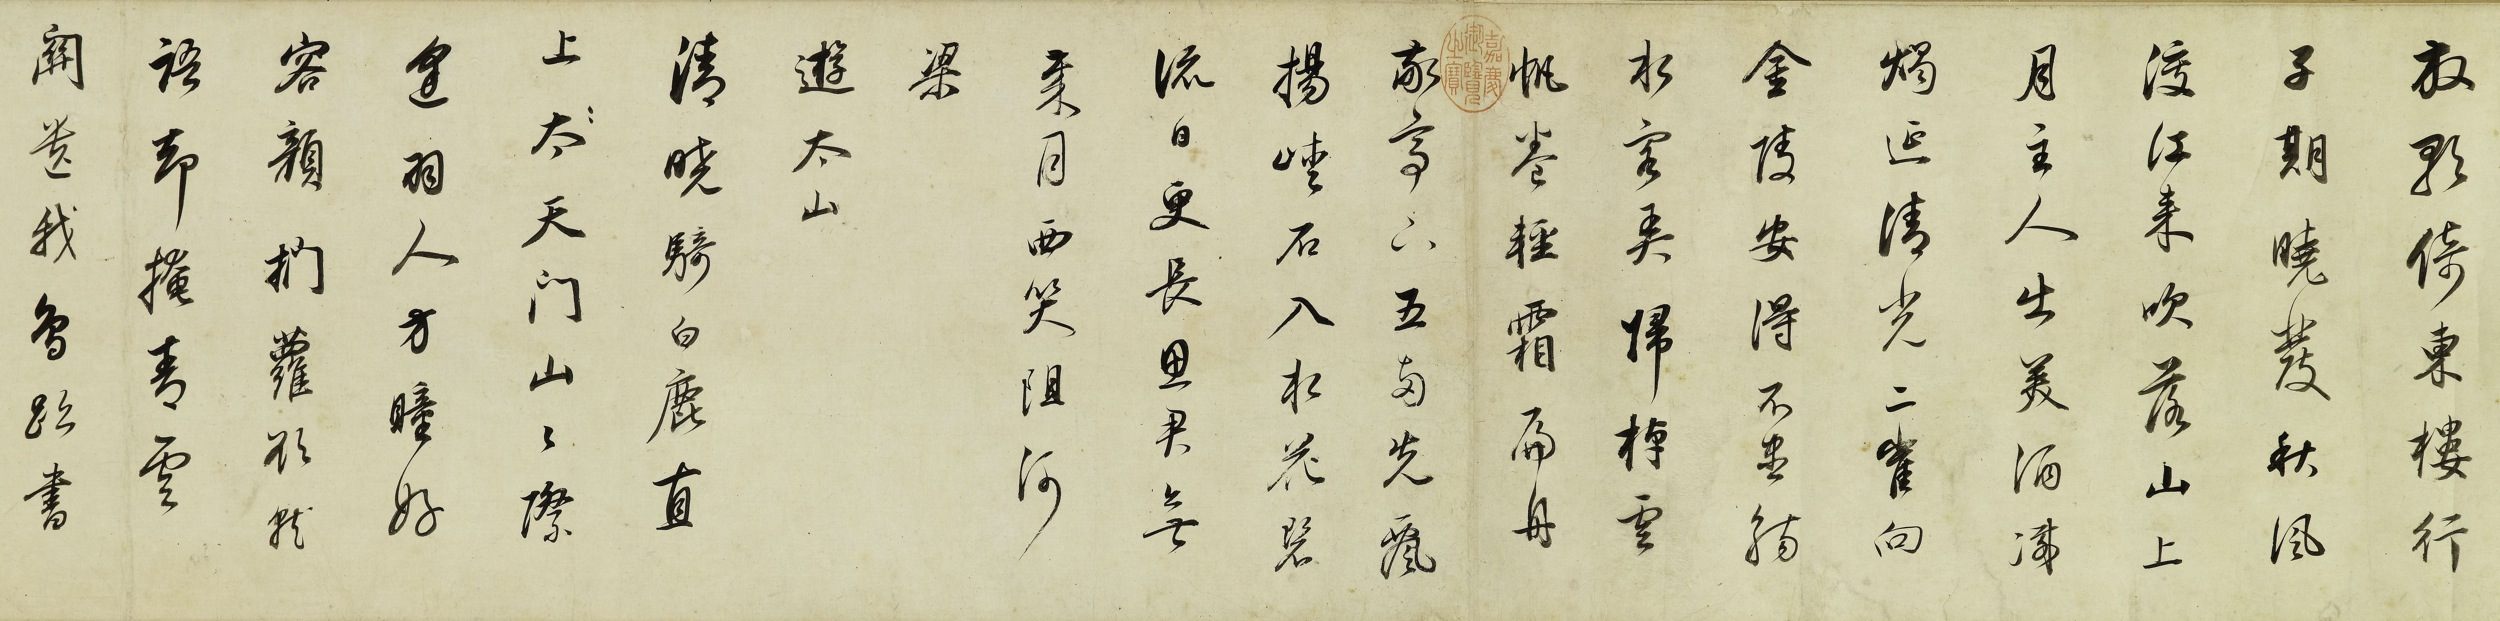 DONG QICHANG (1555-1636) Poems in Running Script Calligraphy, courtesy ...